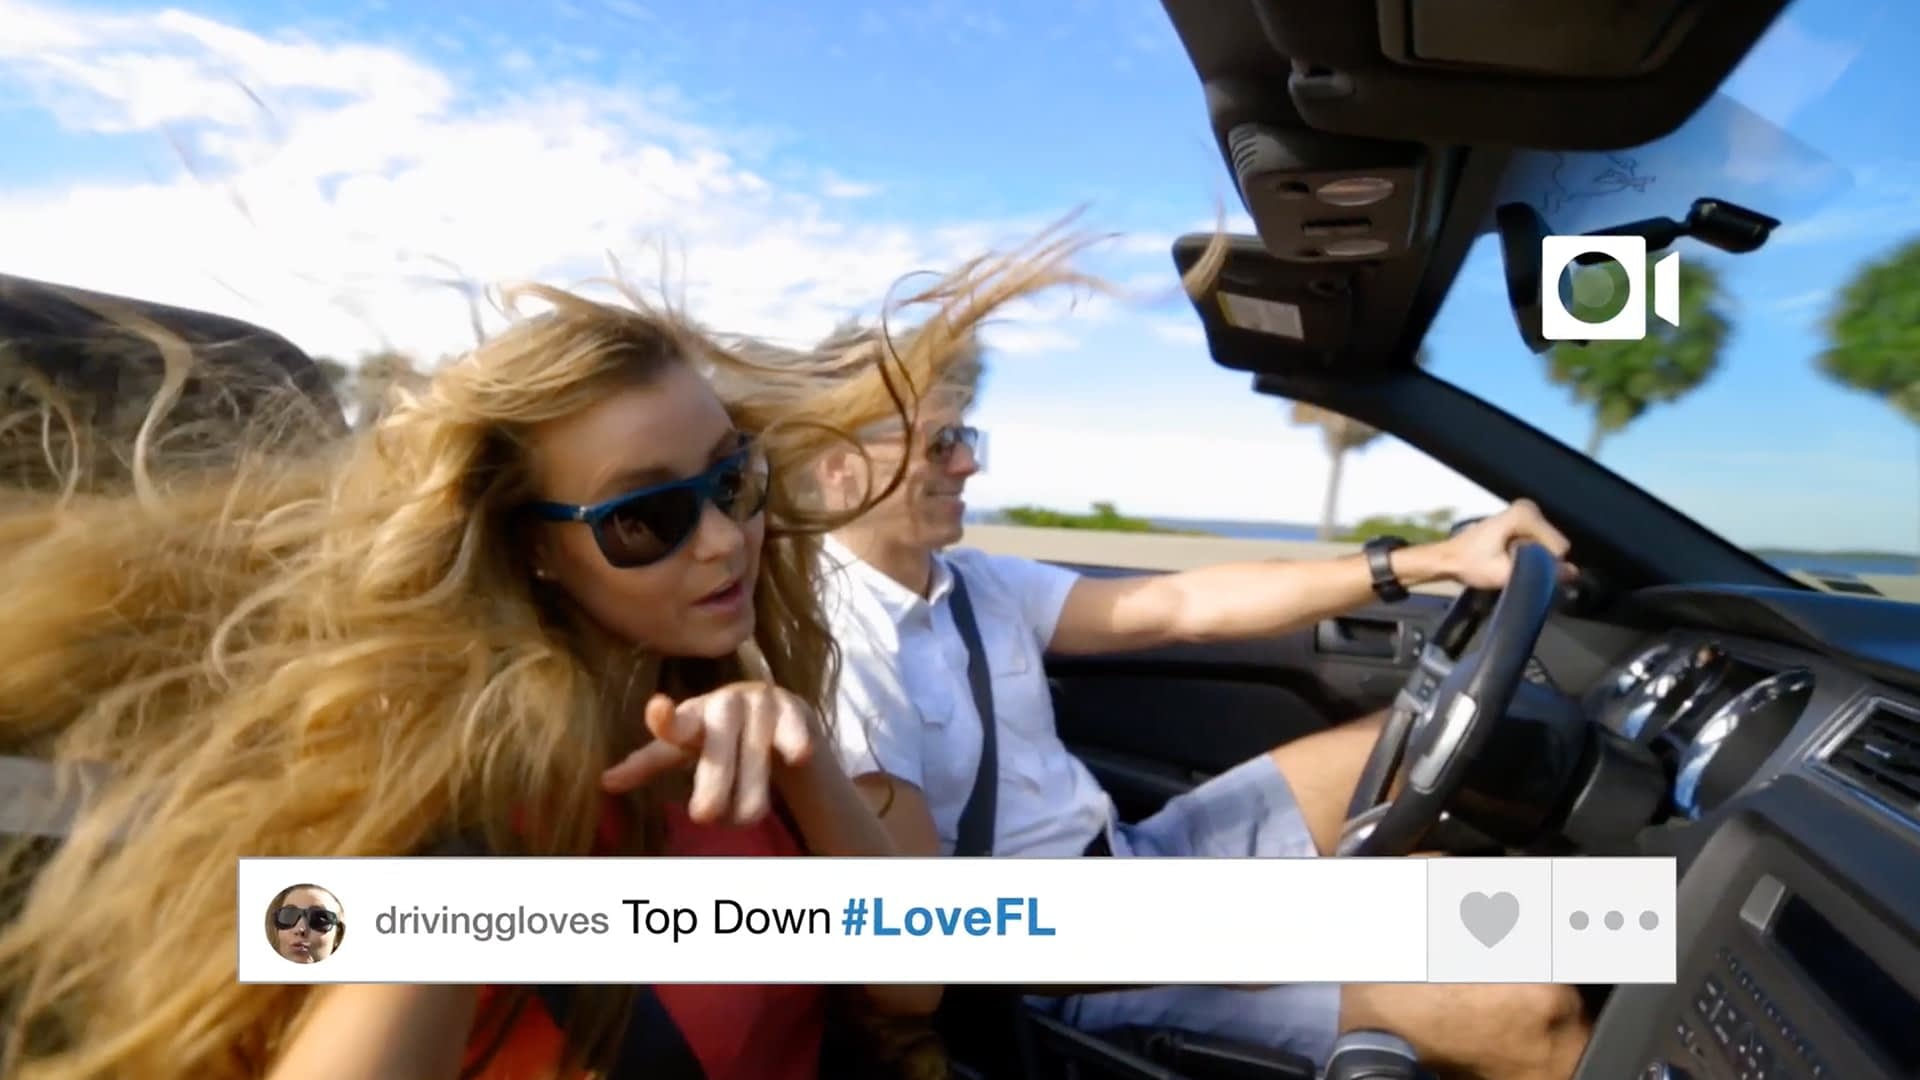 A screen grab of a woman's instagram post. She is the passenger in a top down convertible with her hair flying everywhere. The post says Top Down #LoveFL.